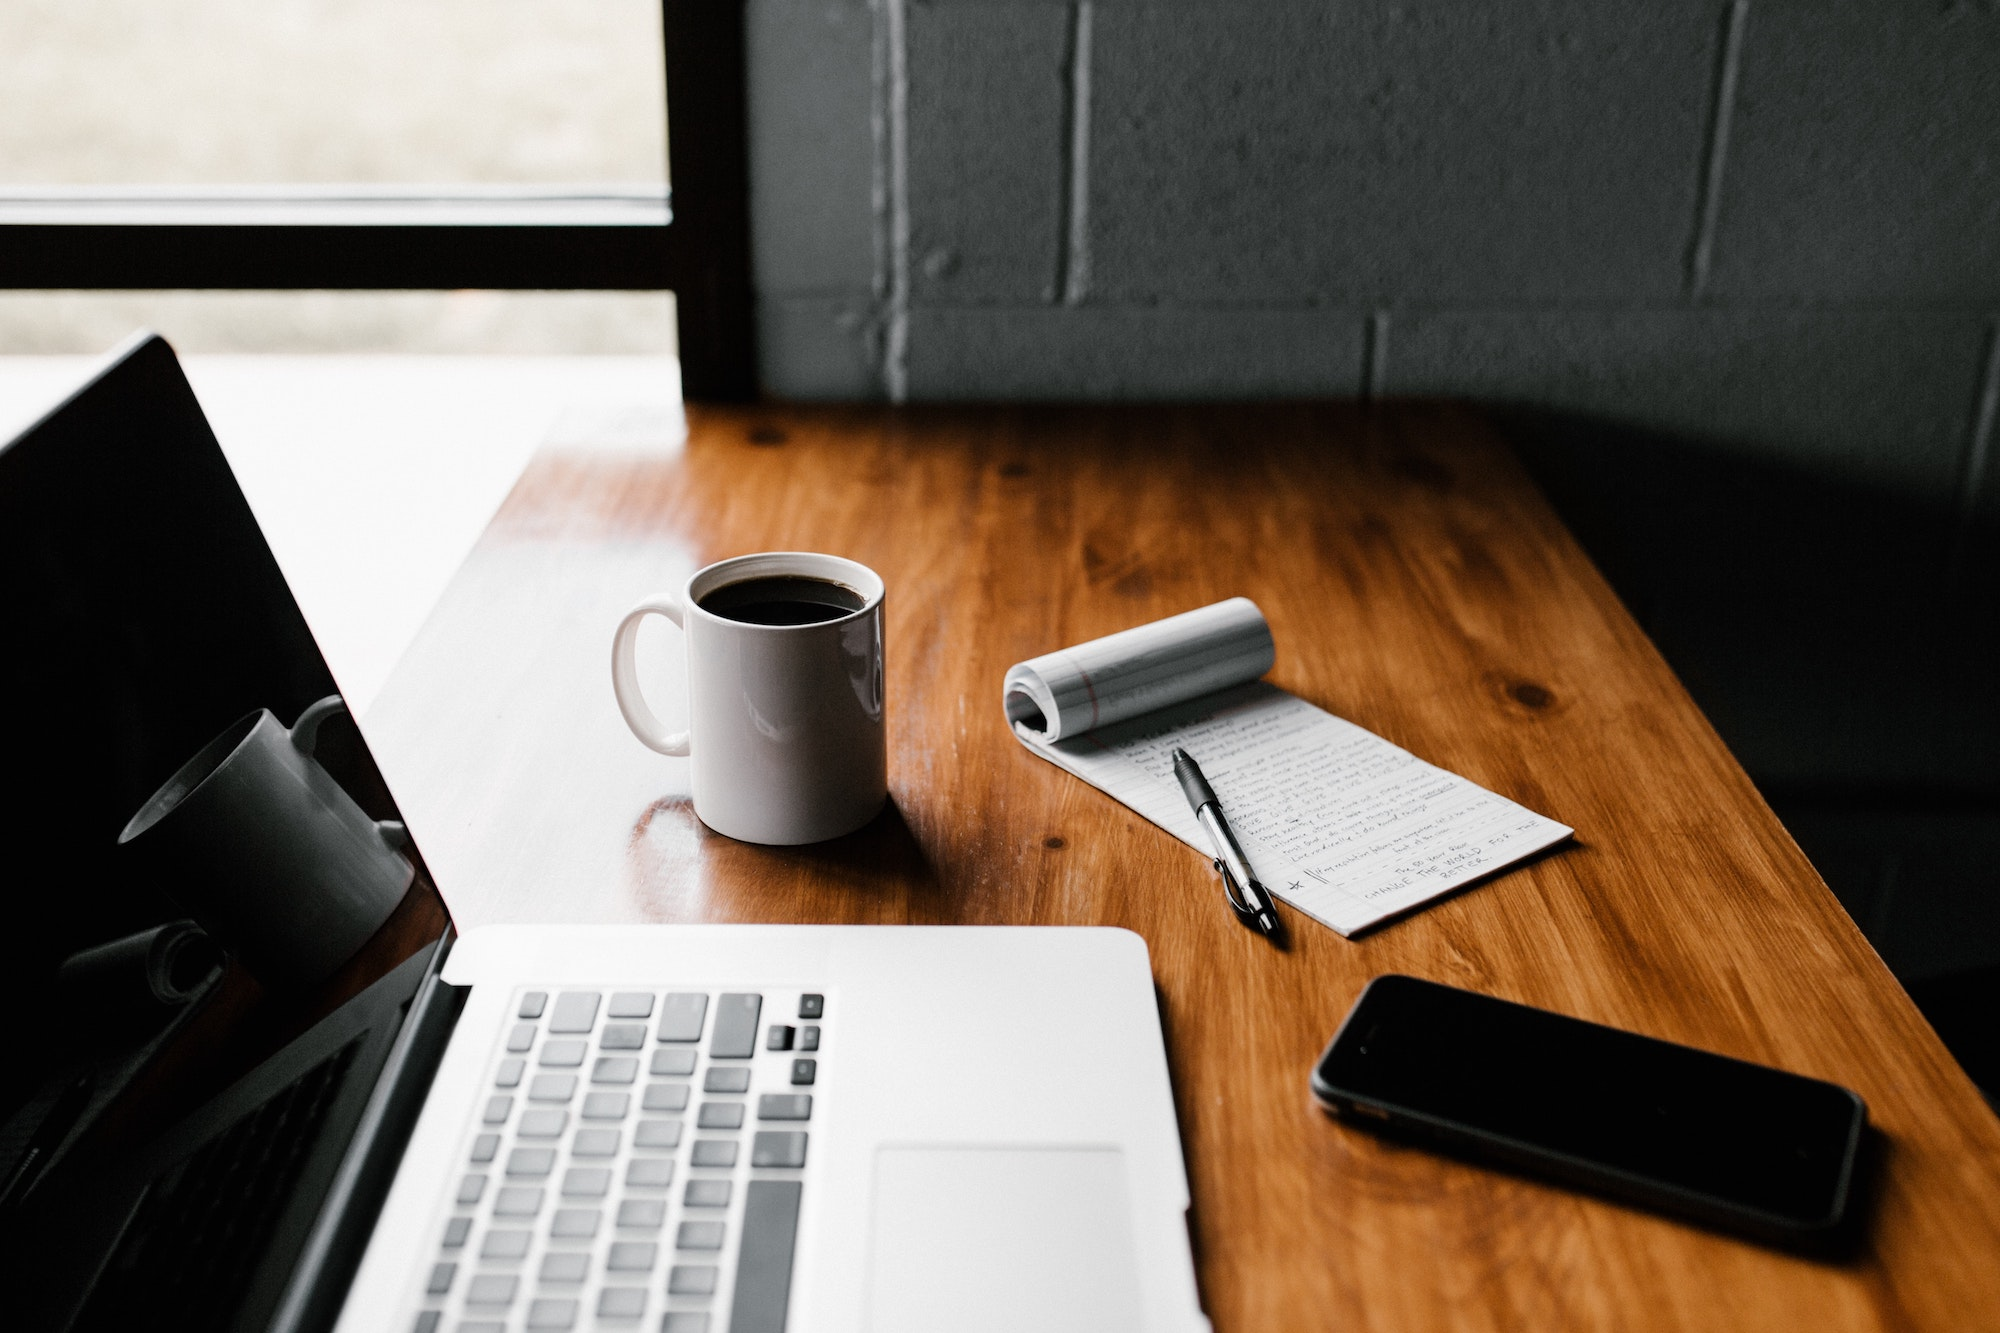 Top tips for home working